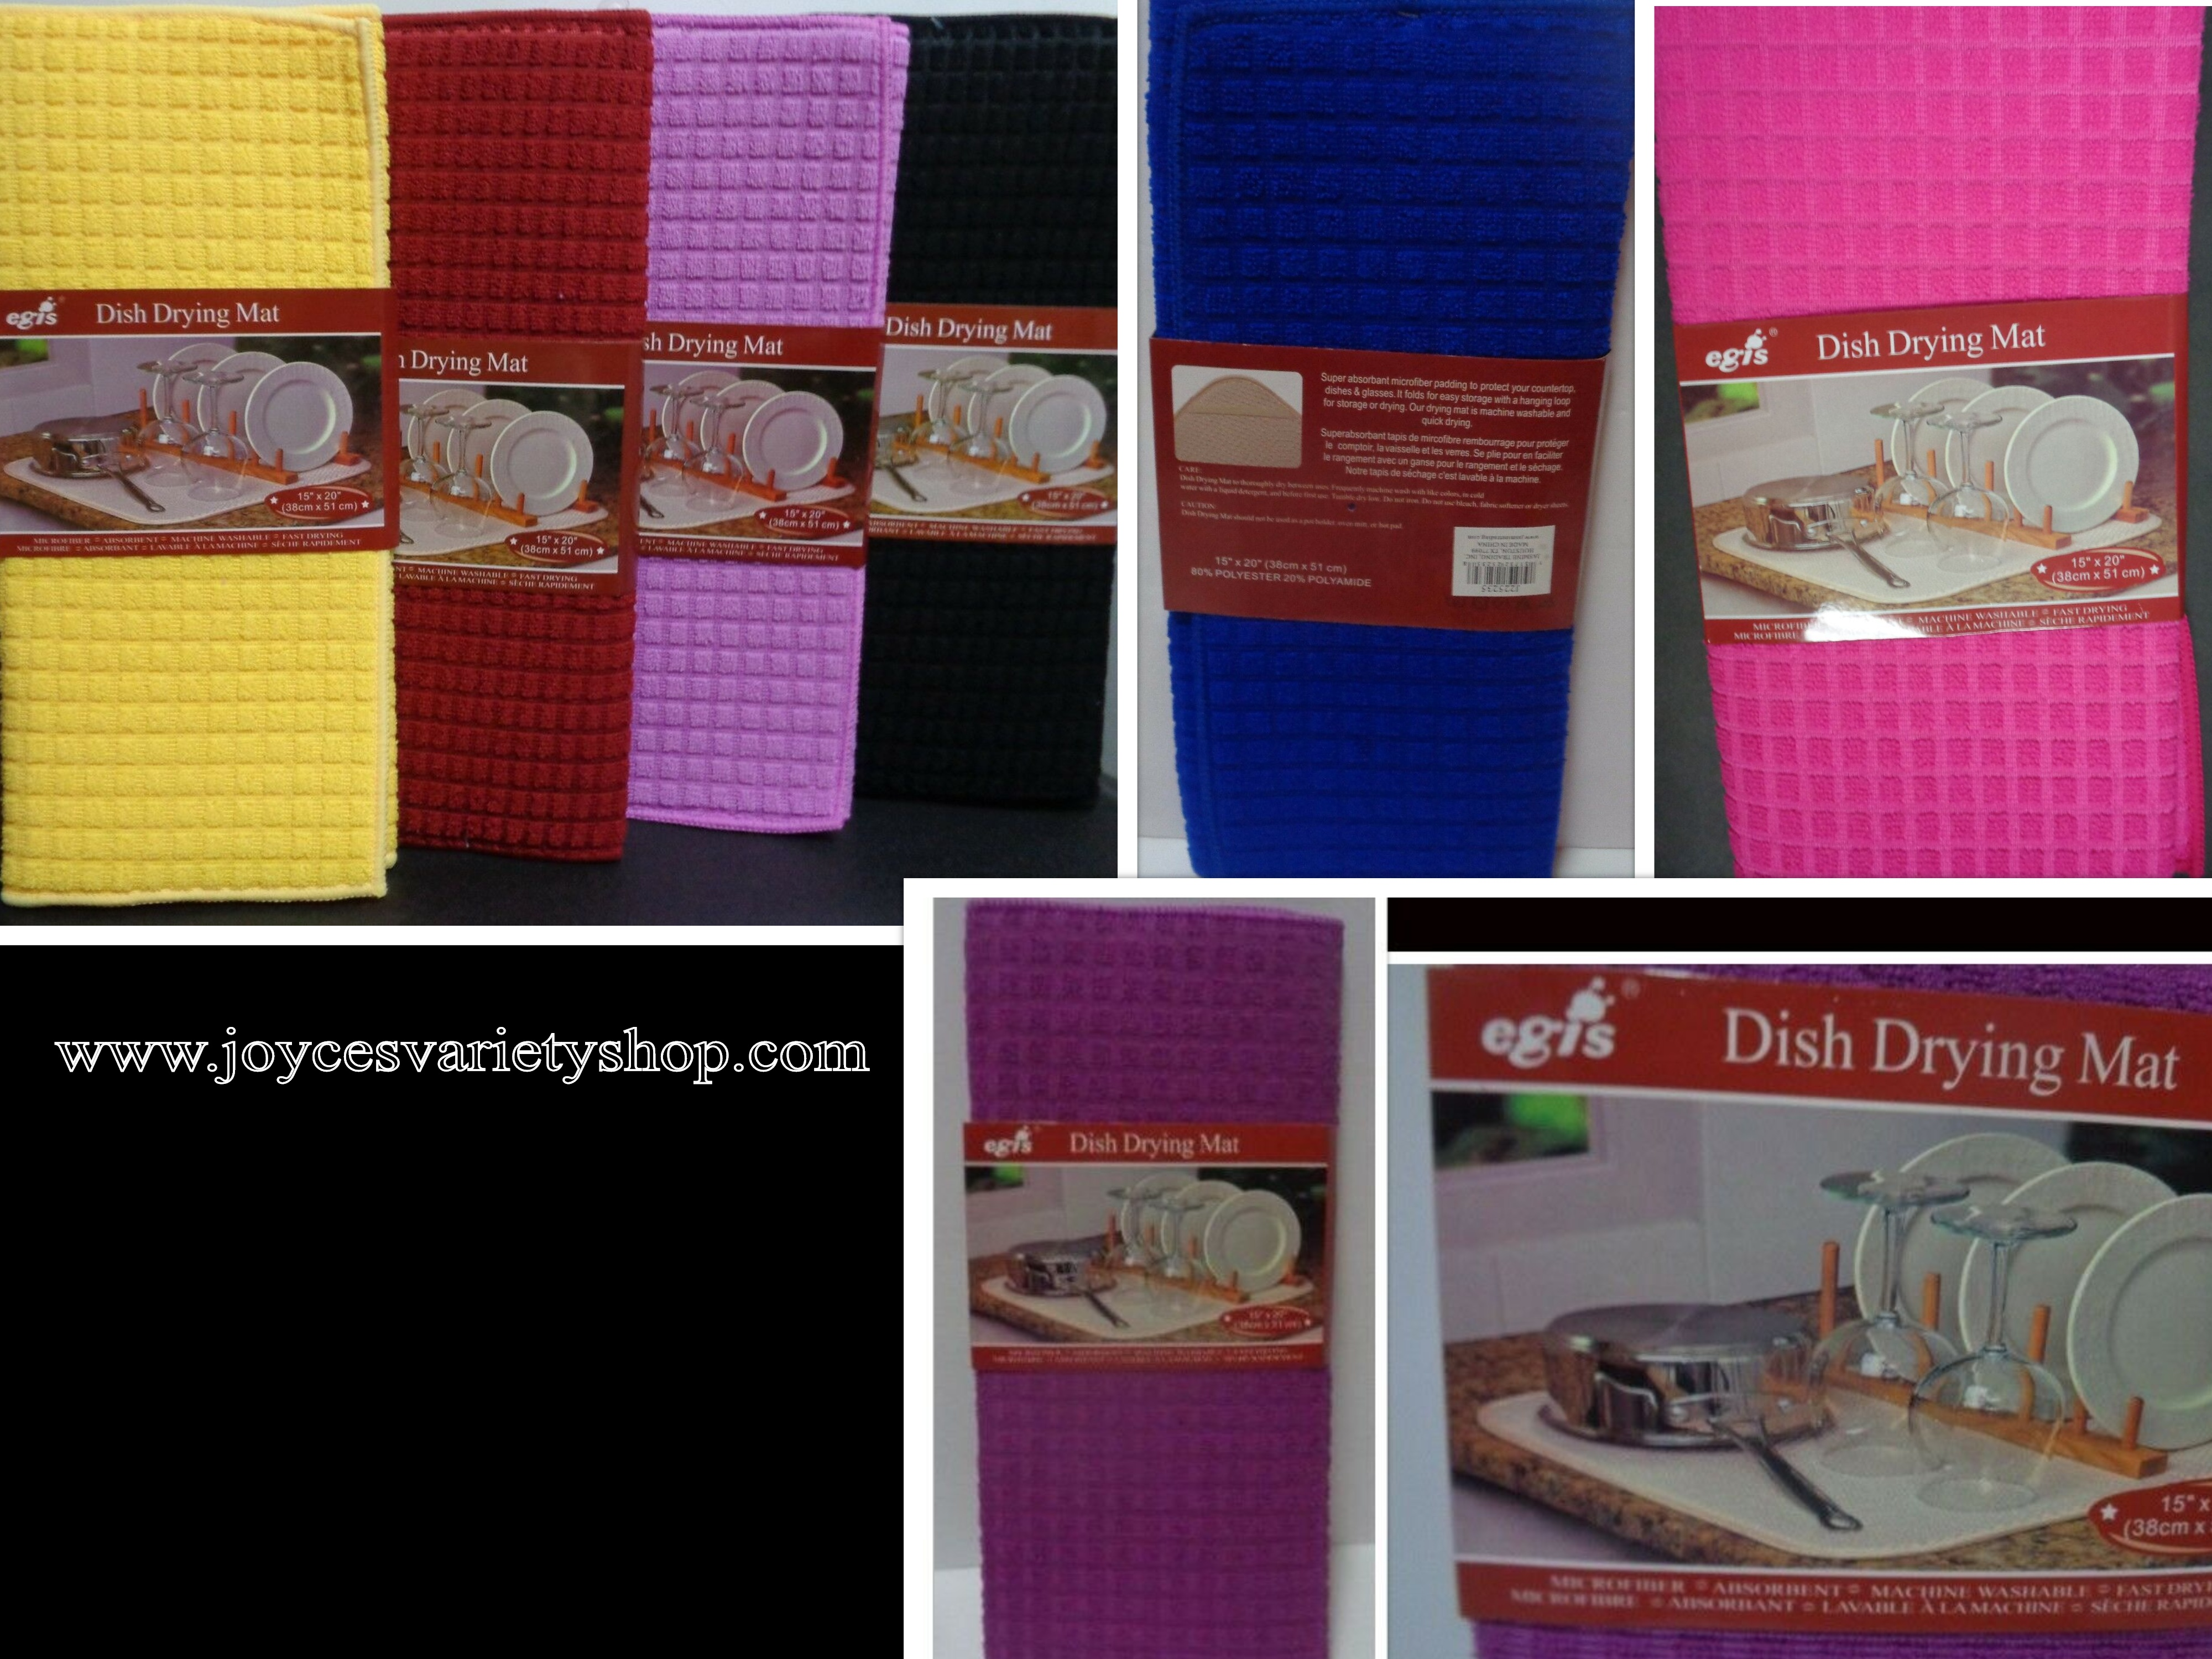 "Dish Drying Mat Microfiber Absorbent Washable Fast Drying Many Colors 15"" x 20"""